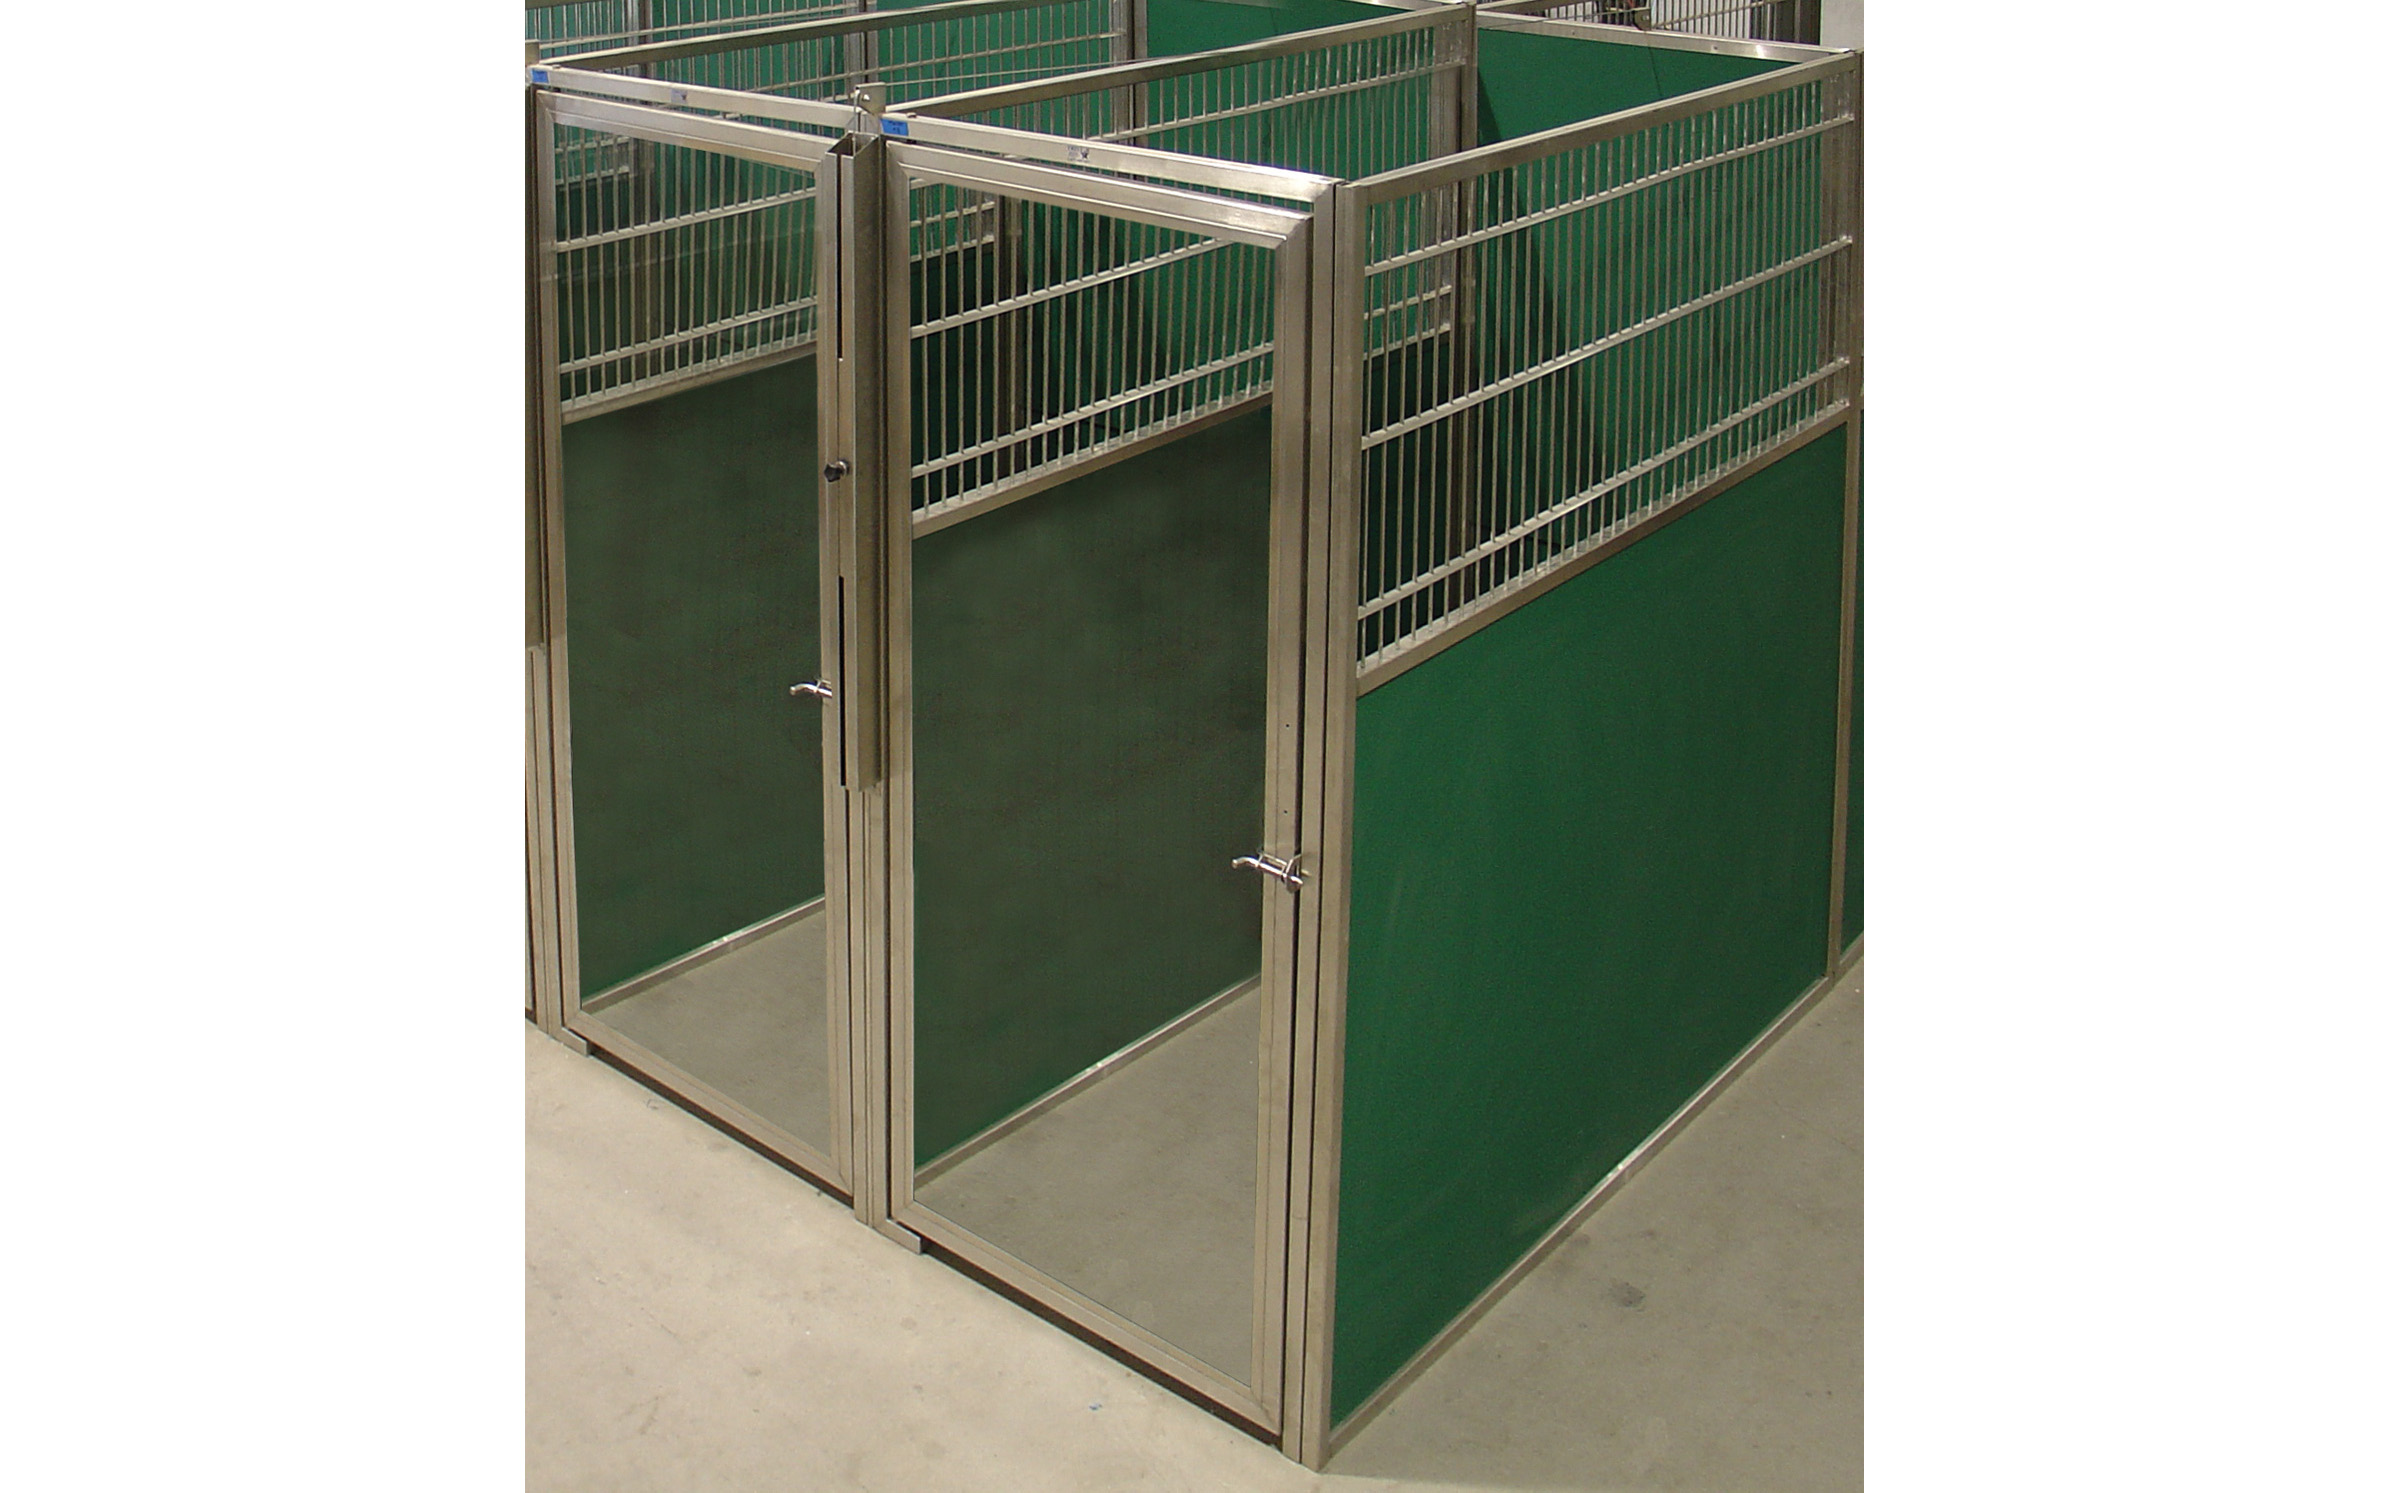 When manufacturing the best glass dog kennel doors for your facility